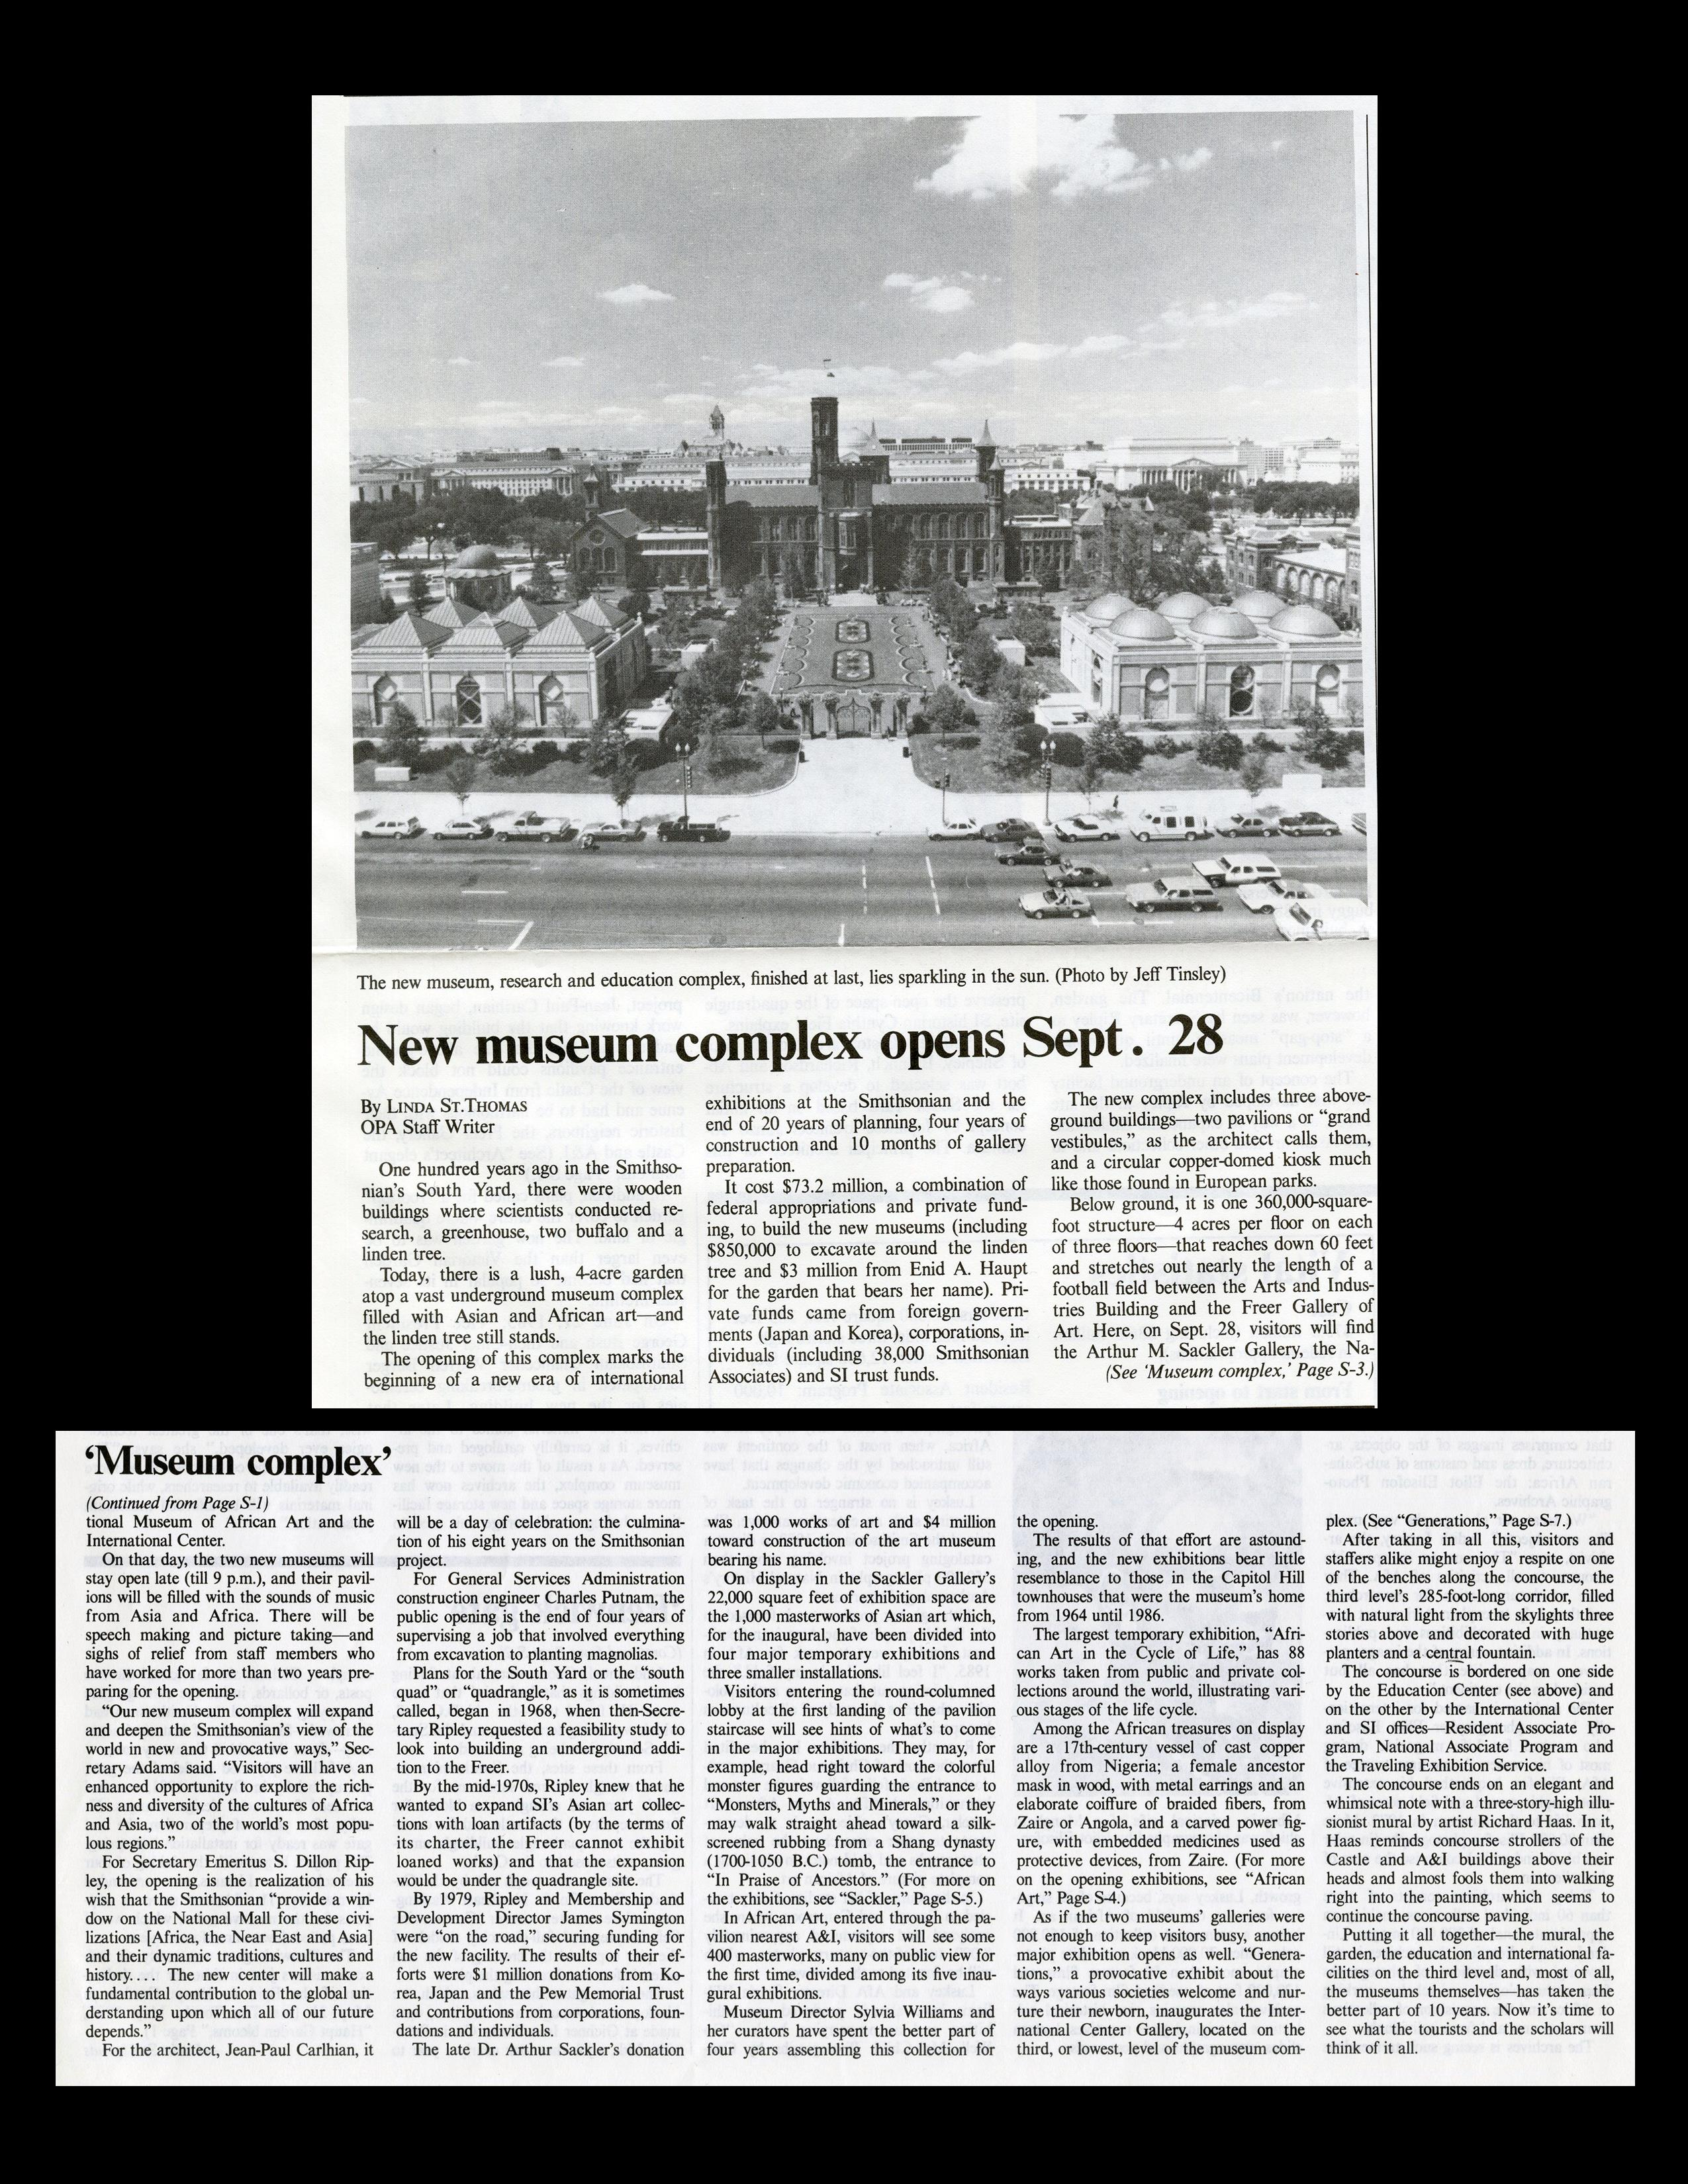 """New museum complex opens Sept. 28"" - Quadrangle Special Supplement, The Torch, September 1987, no."